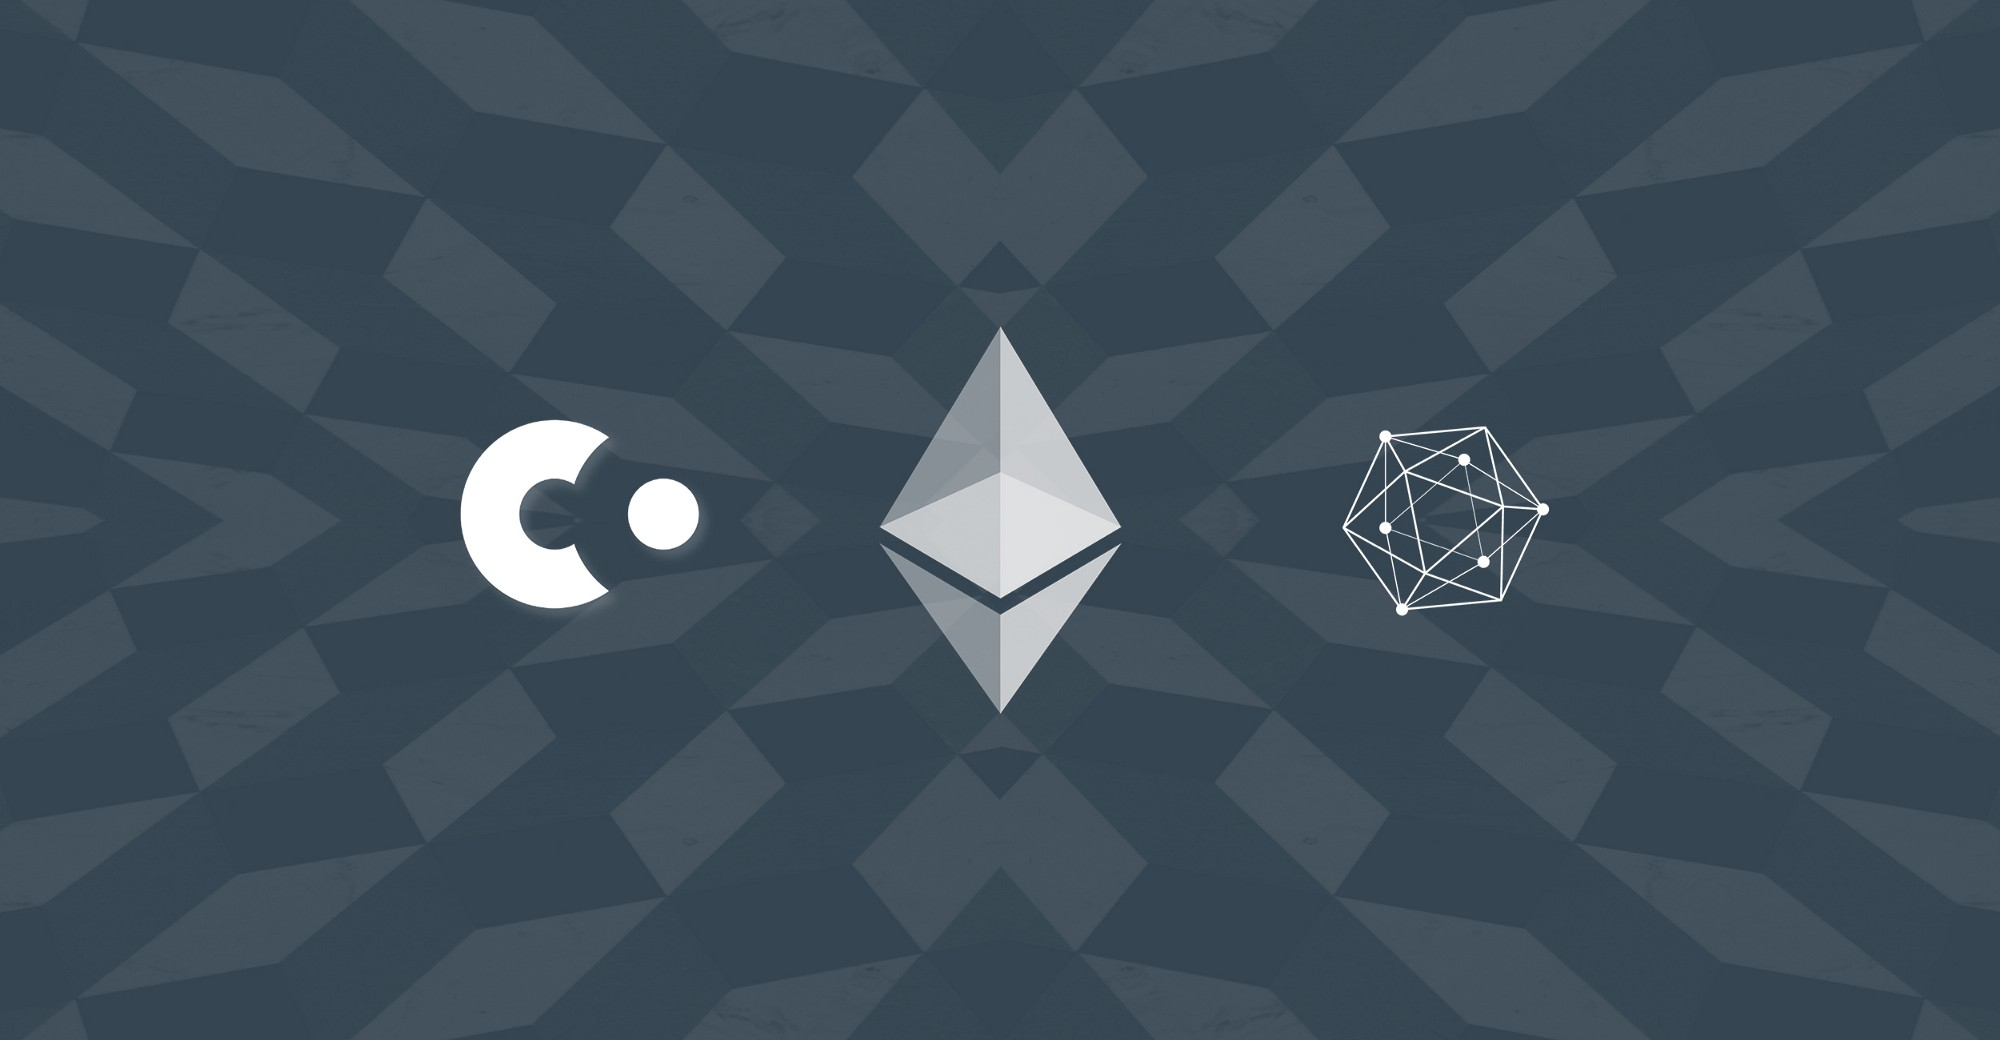 Blockchain Vs Distributed Ledger Technologies Part 2 Governing Basic Controls Of A Cro By Brent Xu Consensys Protocol Business Architect Vulkan Research Dendrobium Project